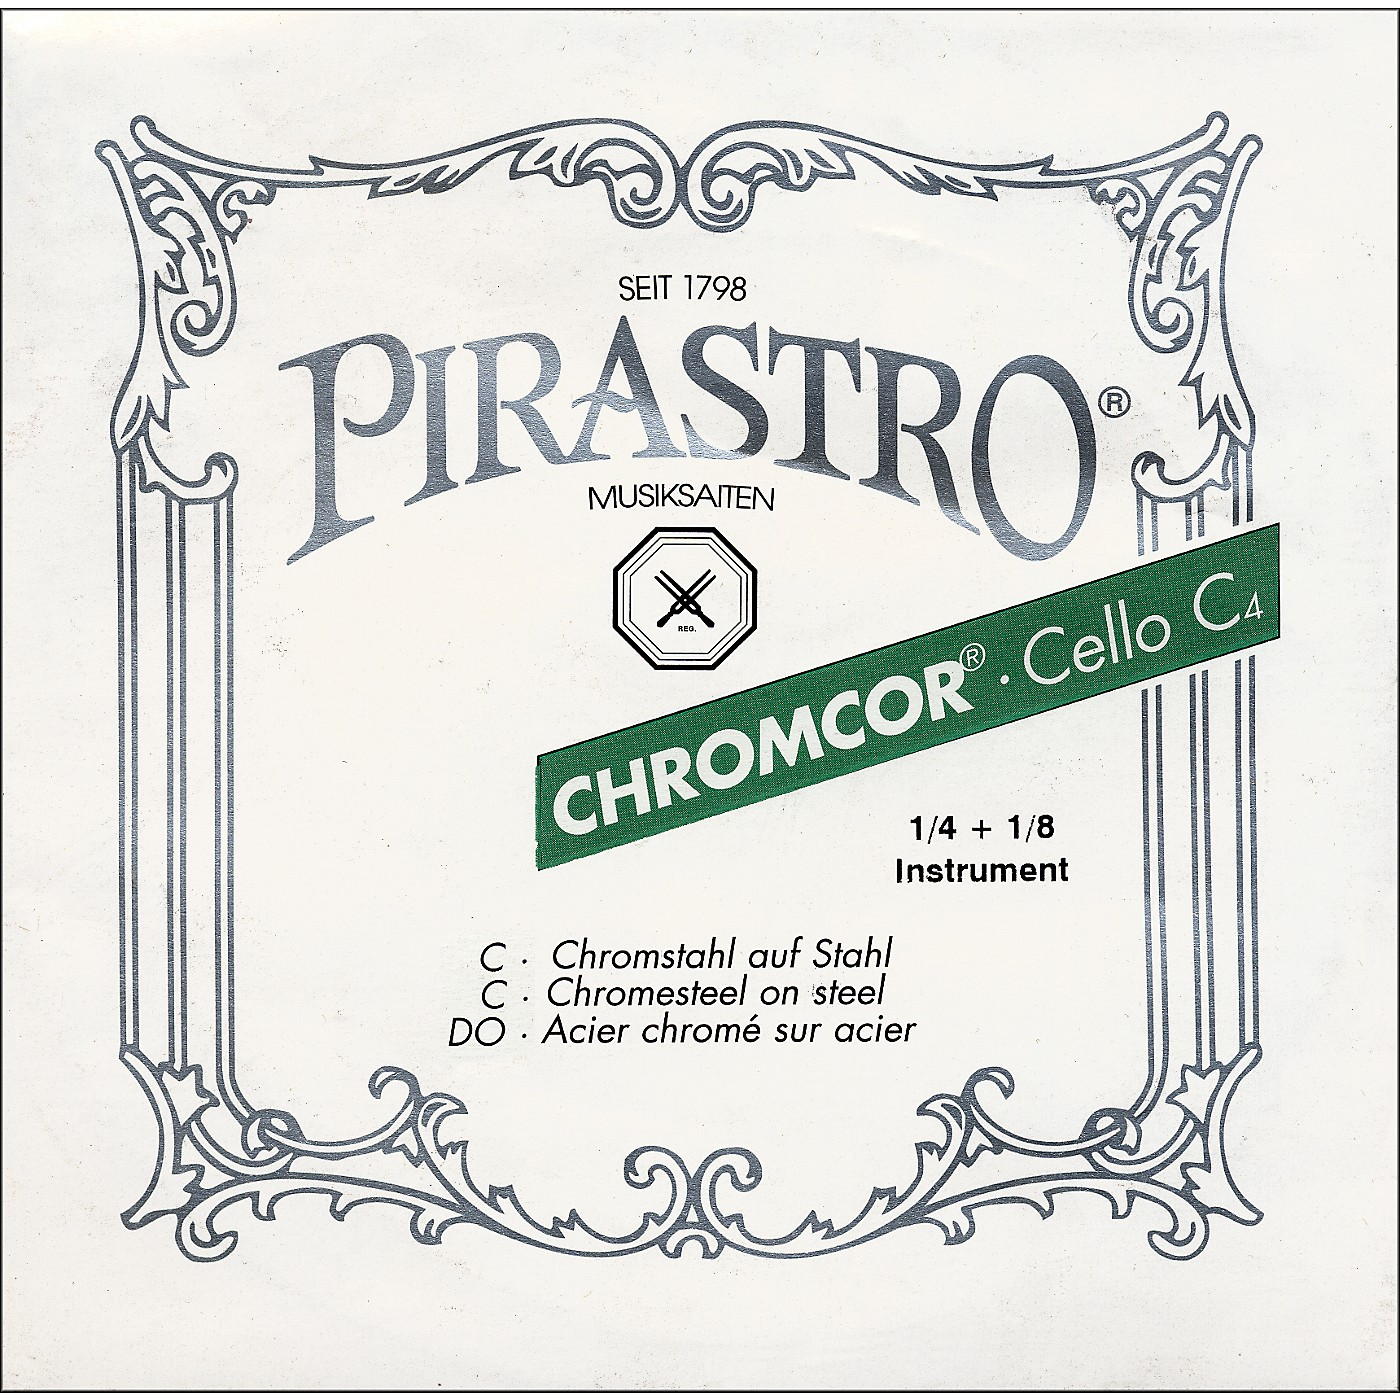 Pirastro Chromcor Series Cello G String thumbnail